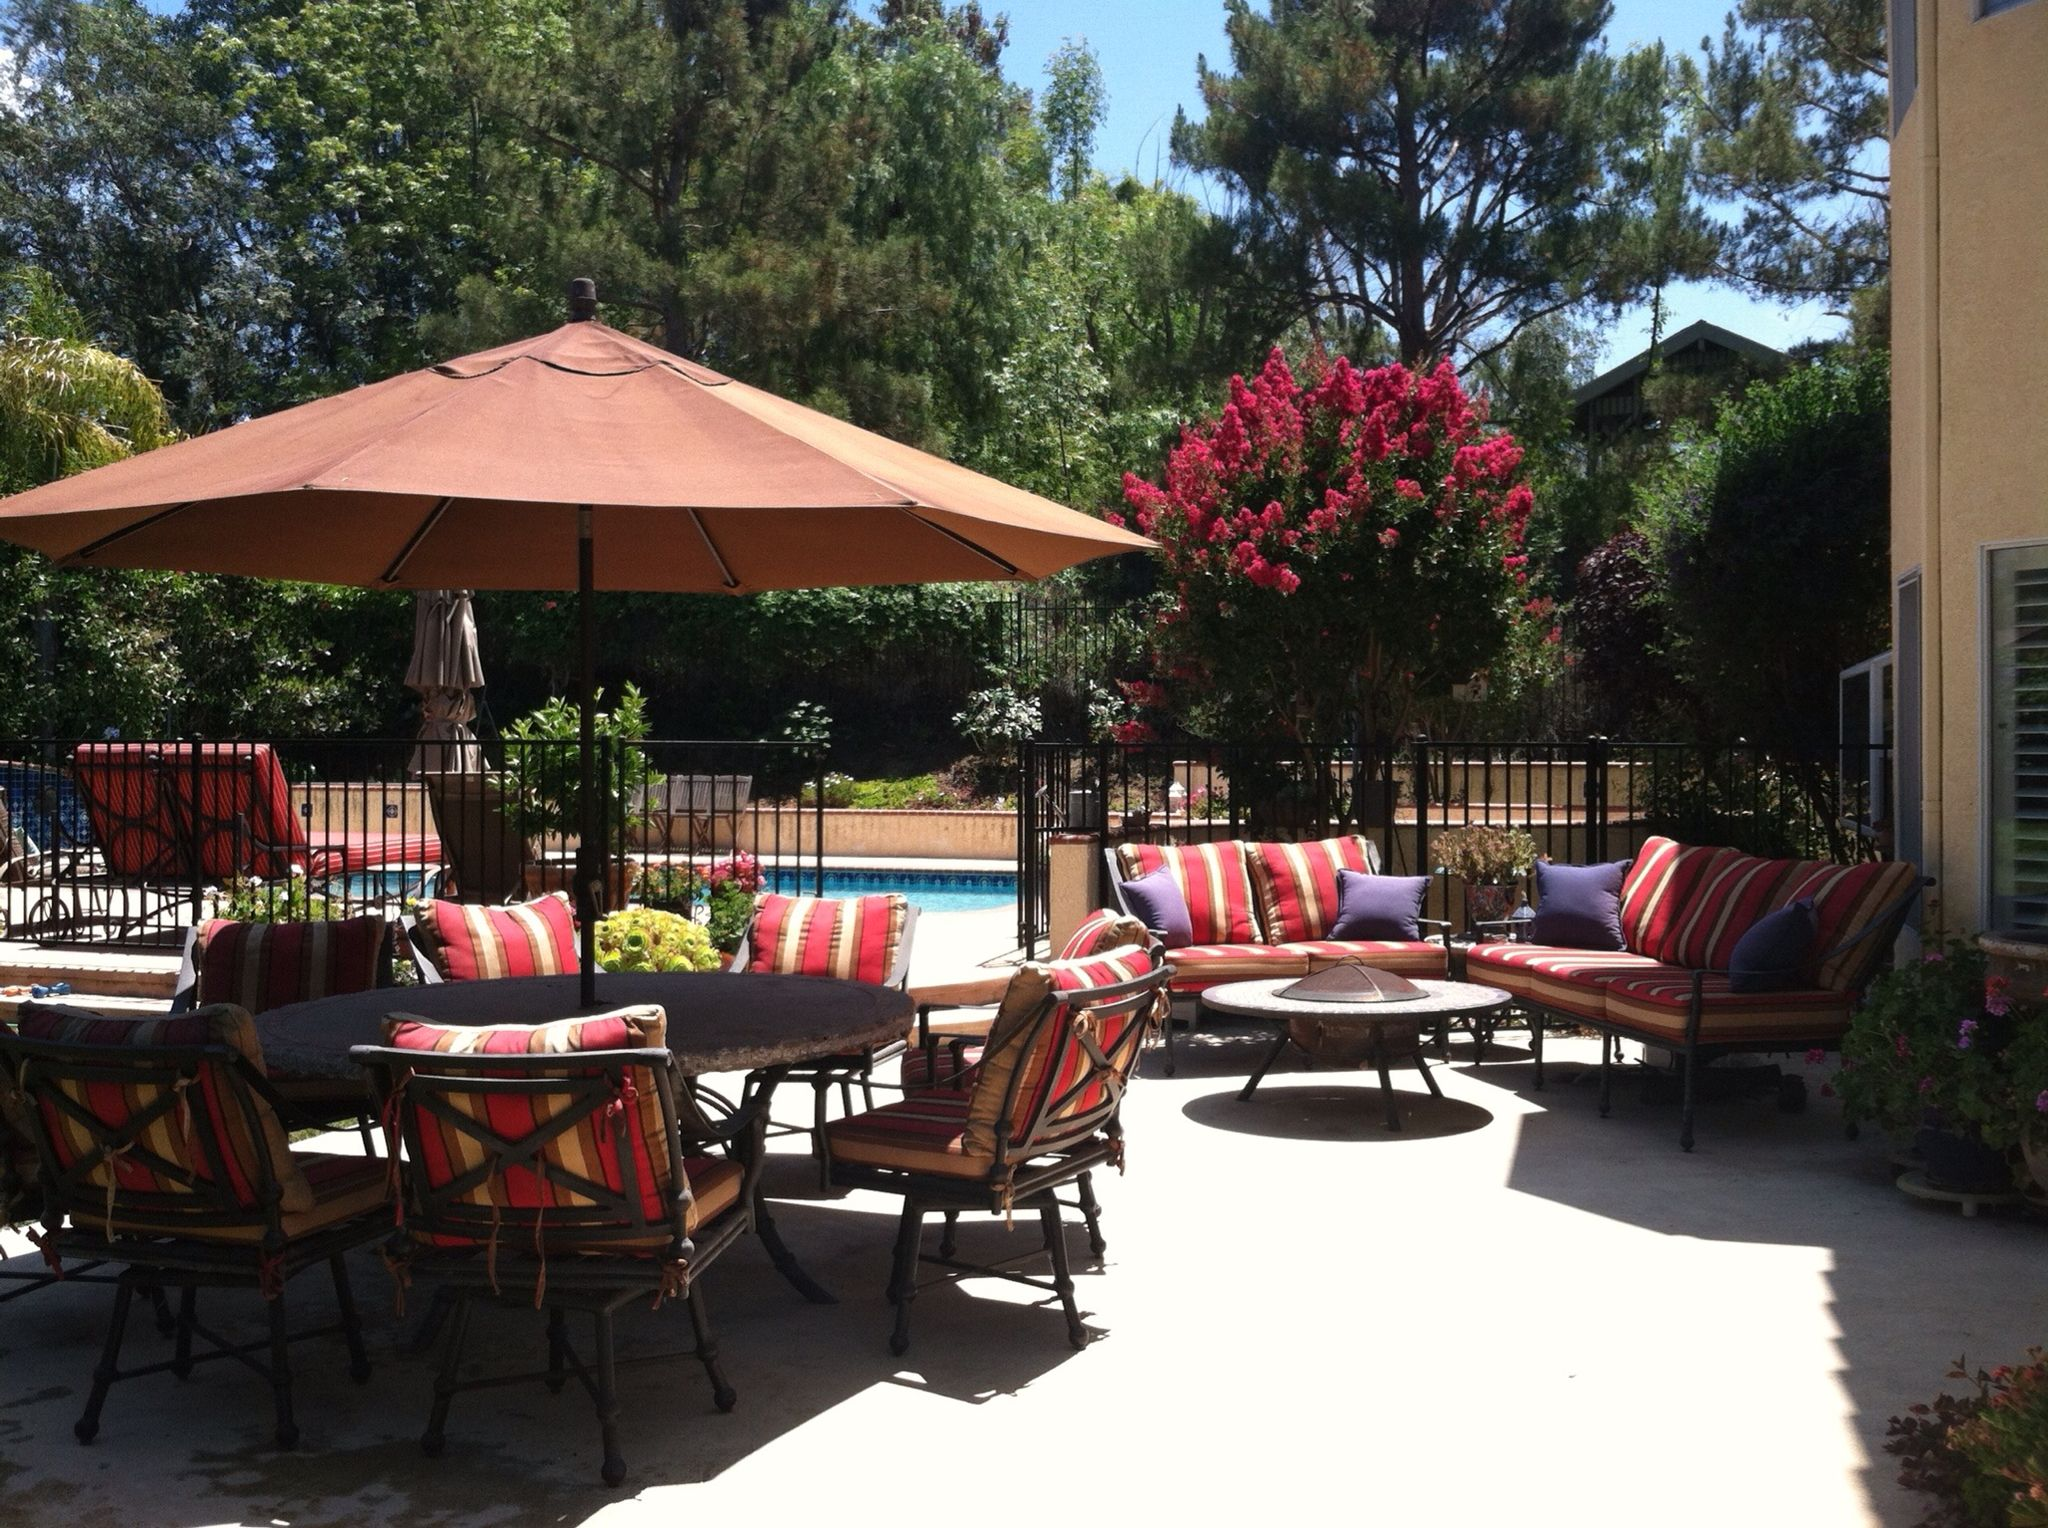 Backyard Patio Alicia Paley Home Interiors California Living Outdoor Lifestyle Decor Upholstery Pool Furniture